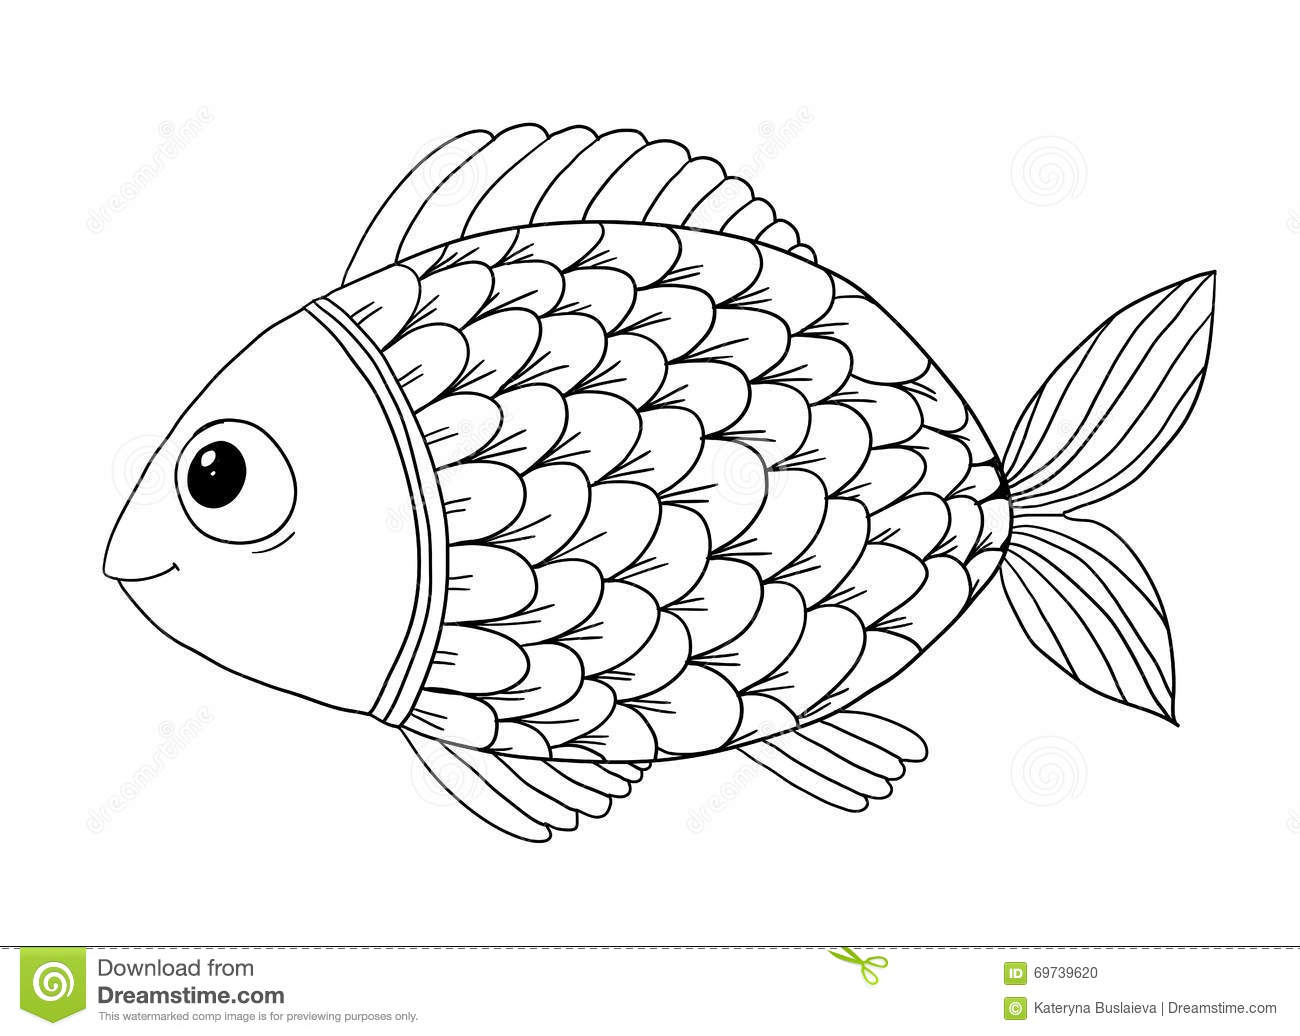 Coloring Book With Fish Stock Vector Illustration Of Friendly